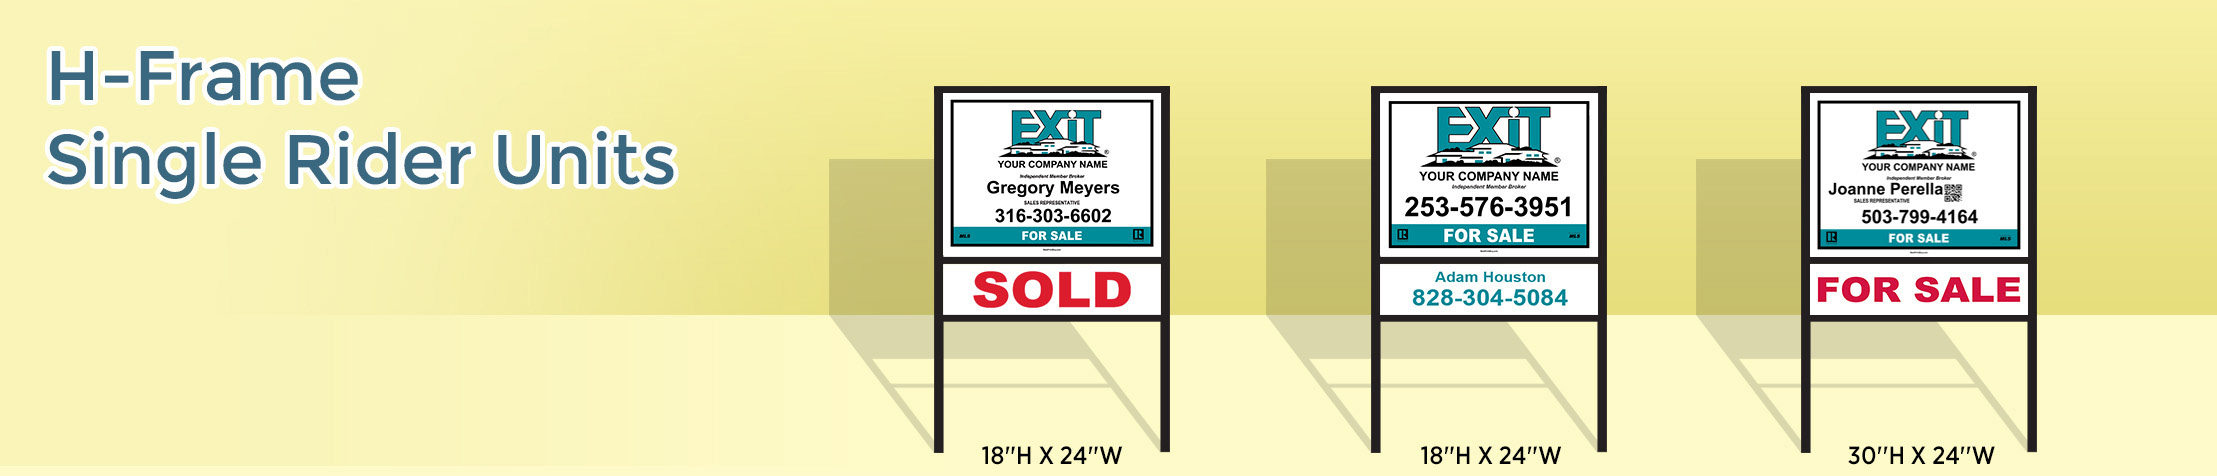 Exit Realty H-Frame Single Rider Units - Exit Realty approved vendor real estate signs | BestPrintBuy.com